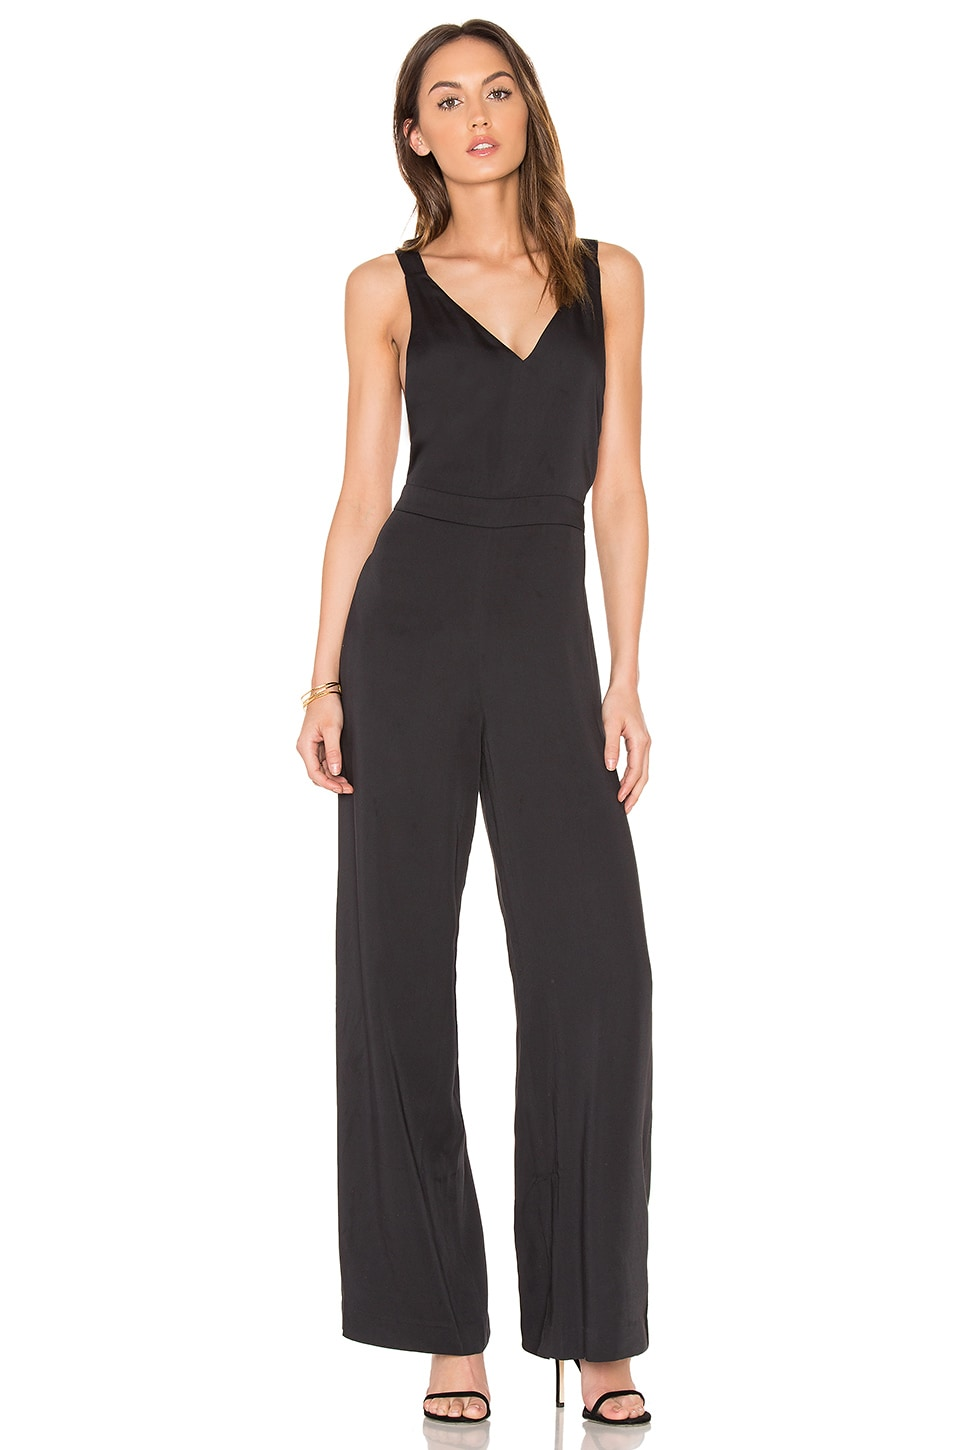 Bobi BLACK Cross Back Jumpsuit in Black